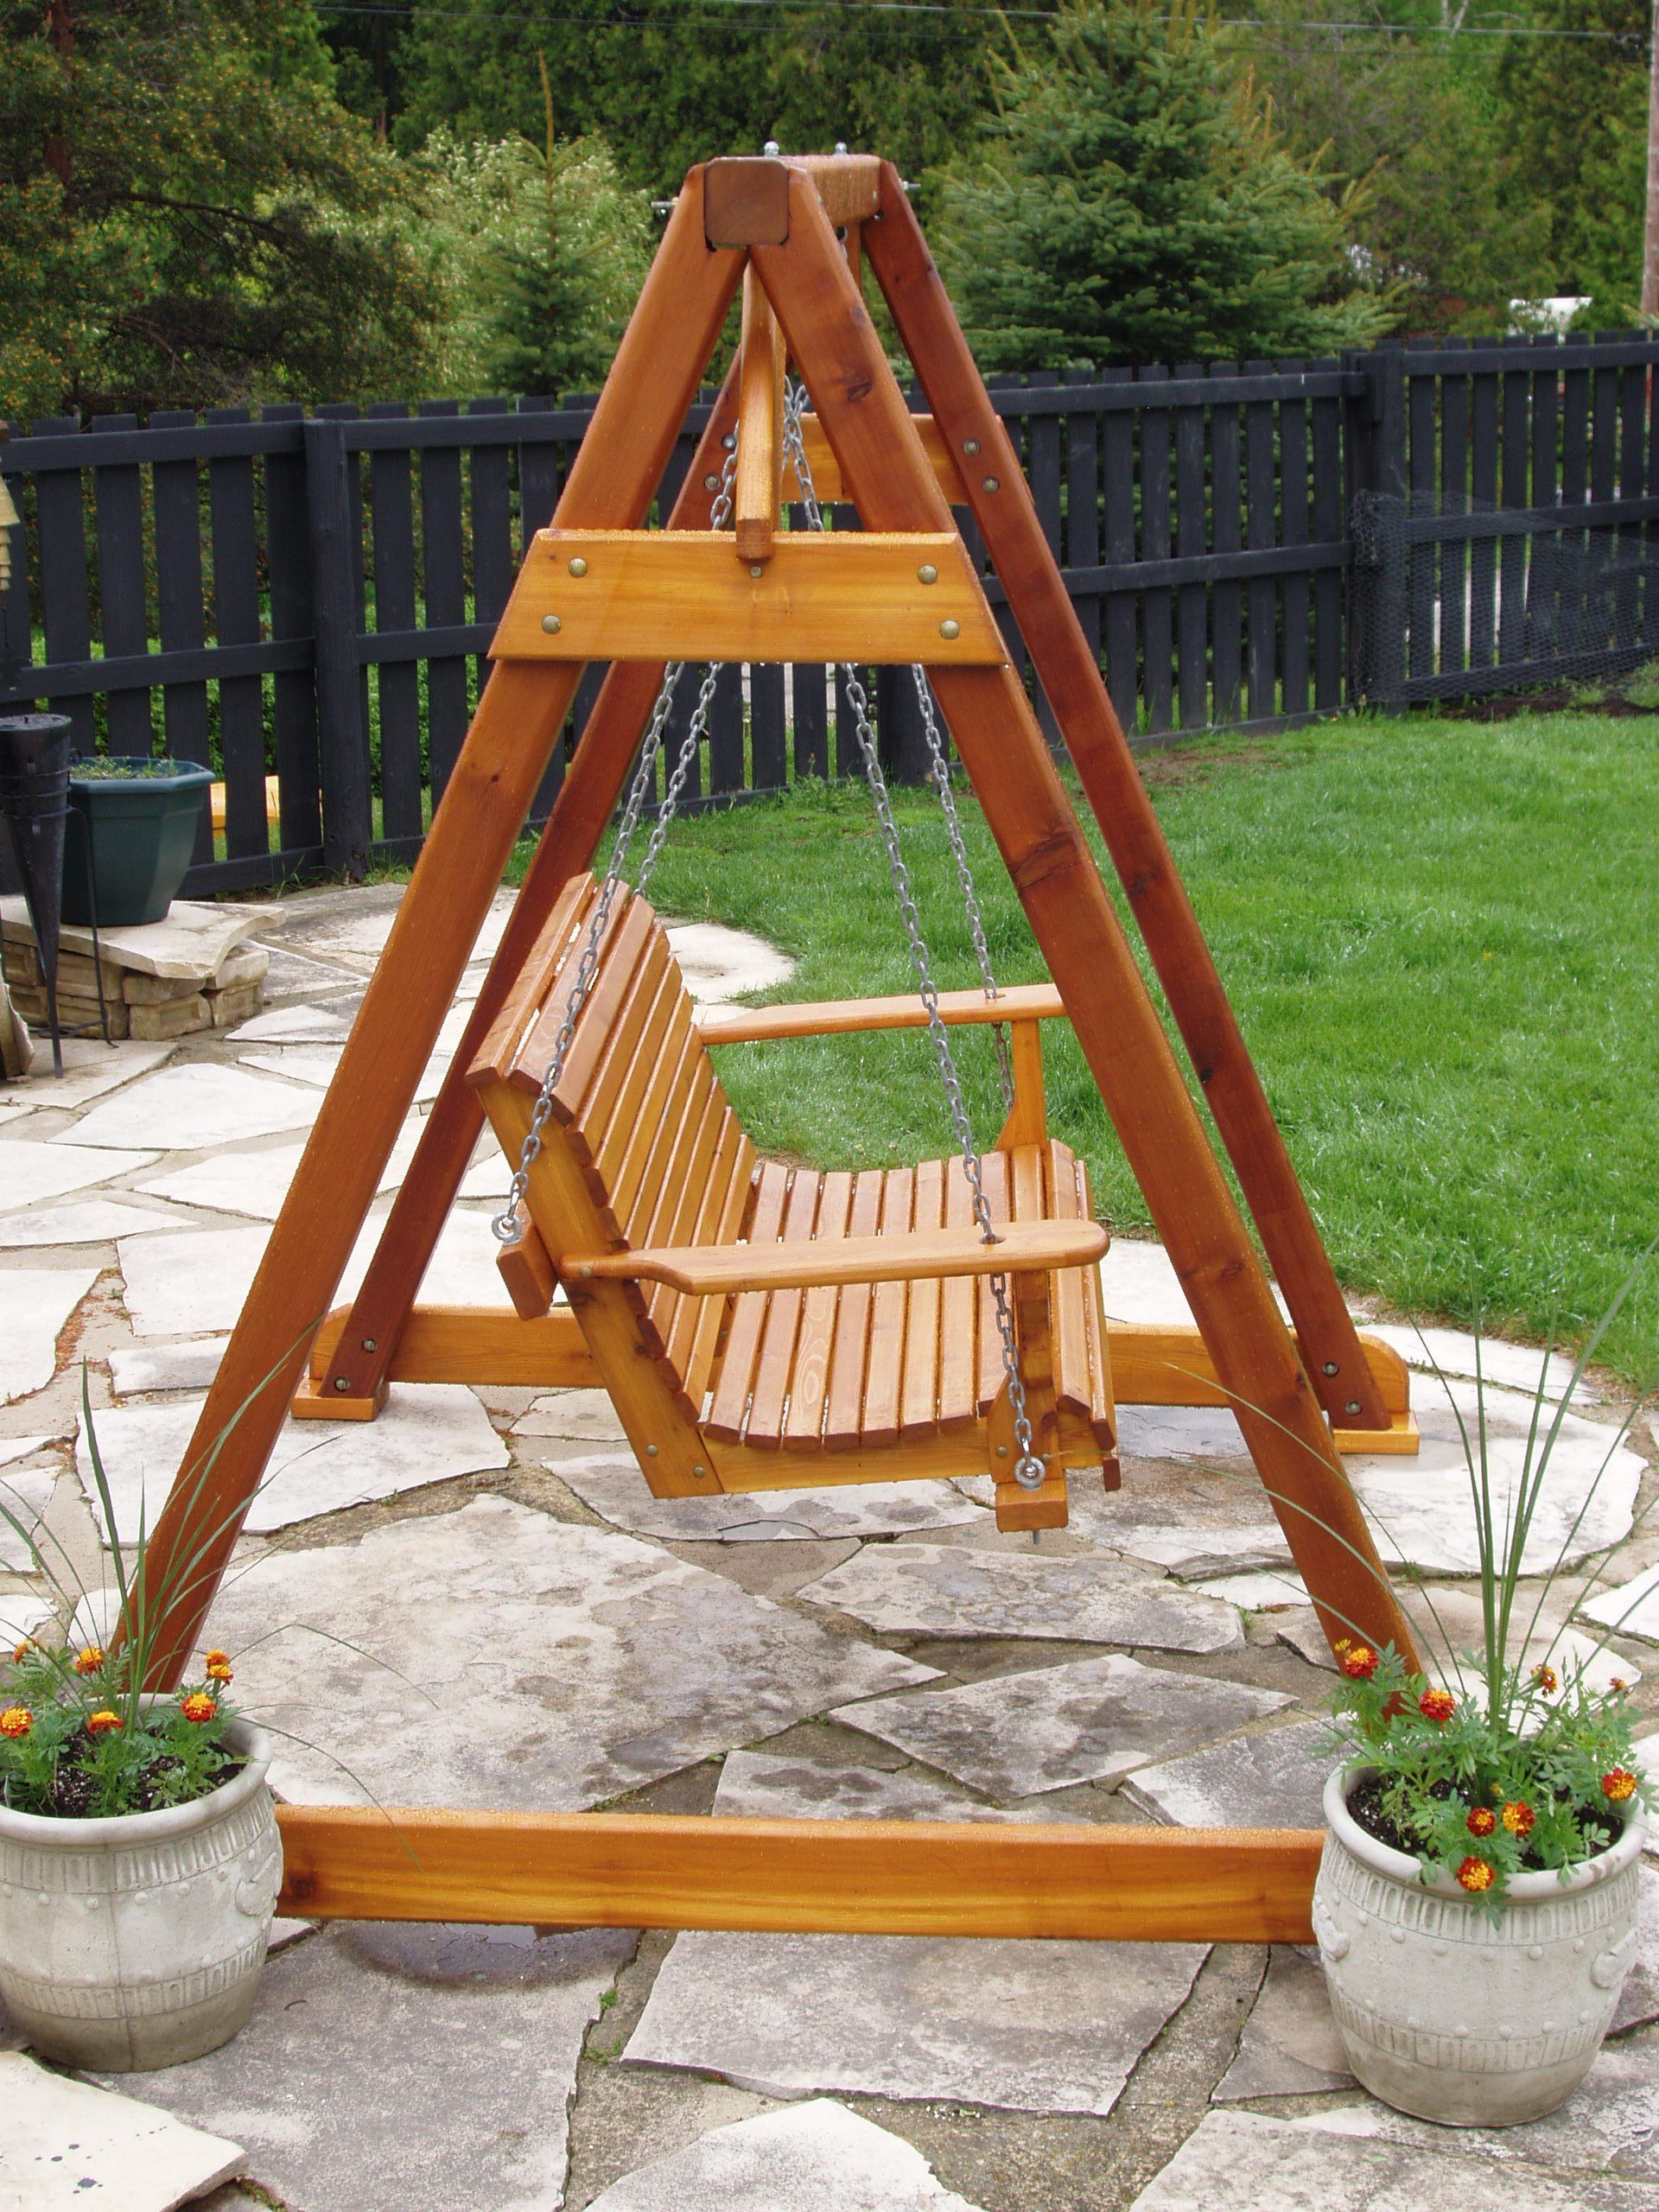 Build Diy How To Build A Frame Porch Swing Stand Pdf Plans Regarding Porch Swings With Stand (View 3 of 25)